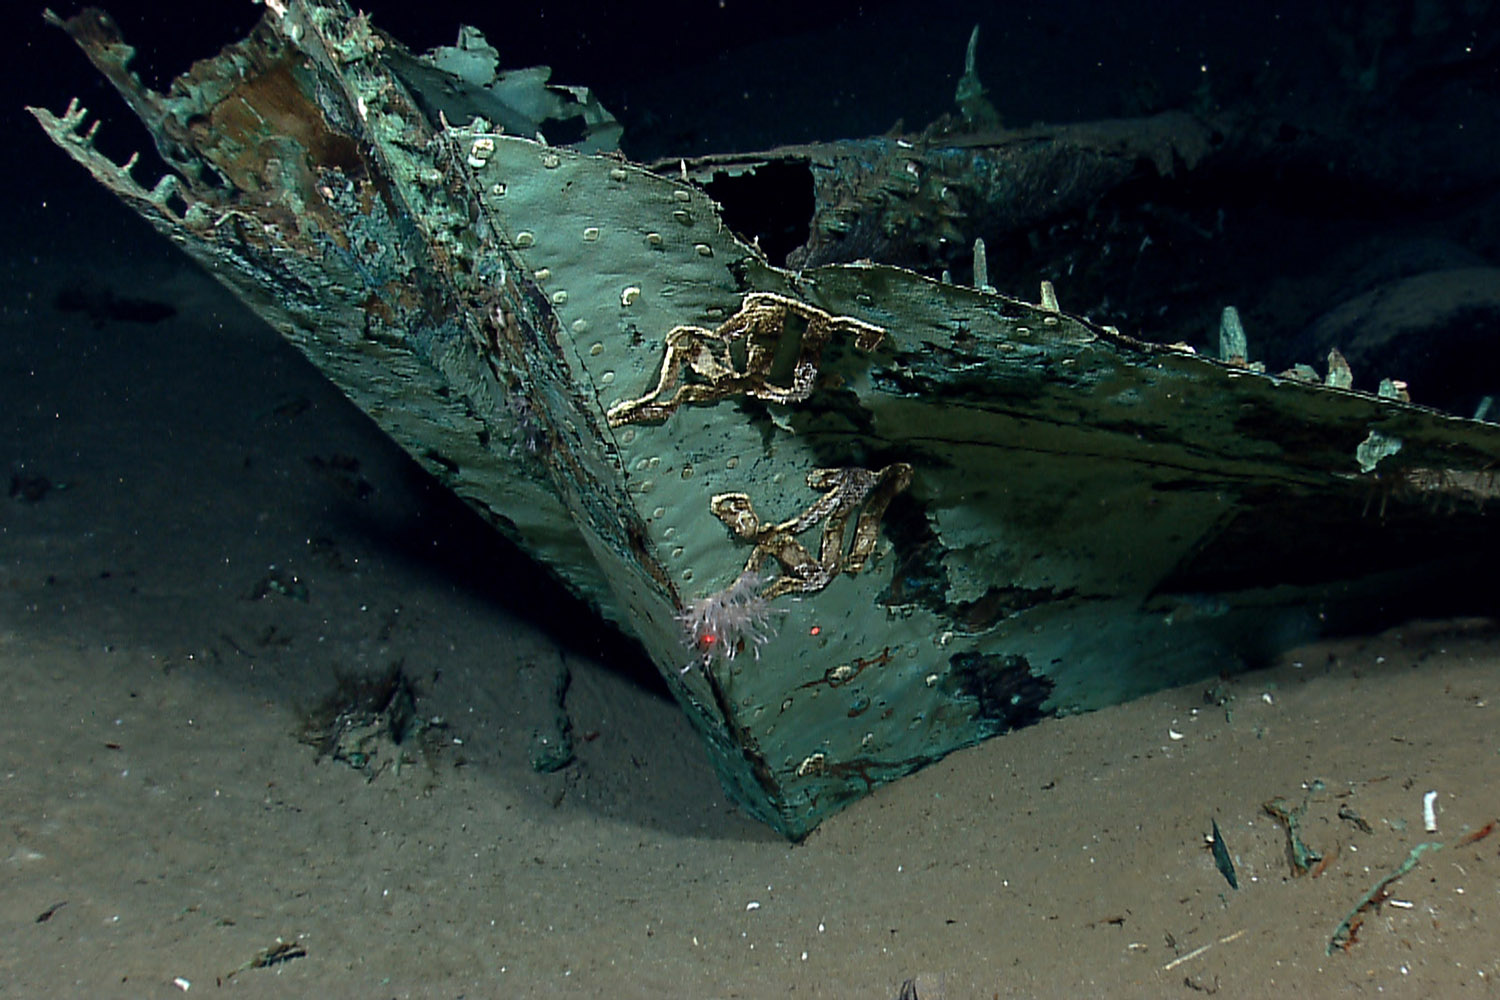 July 24, 2013. In this photo provided by NOAA Okeanos Explorer Program, oidized copper hull sheathing and possible draft marks visible on the bow of a wrecked ship in the Gulf of Mexico about 170 miles from Galveston, Tx.